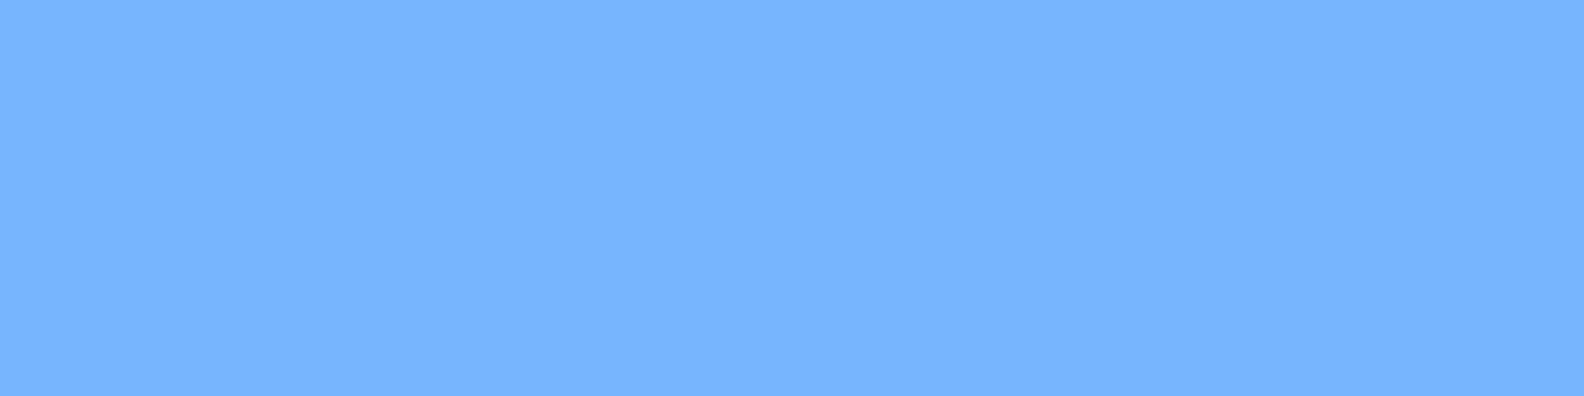 1584x396 French Sky Blue Solid Color Background